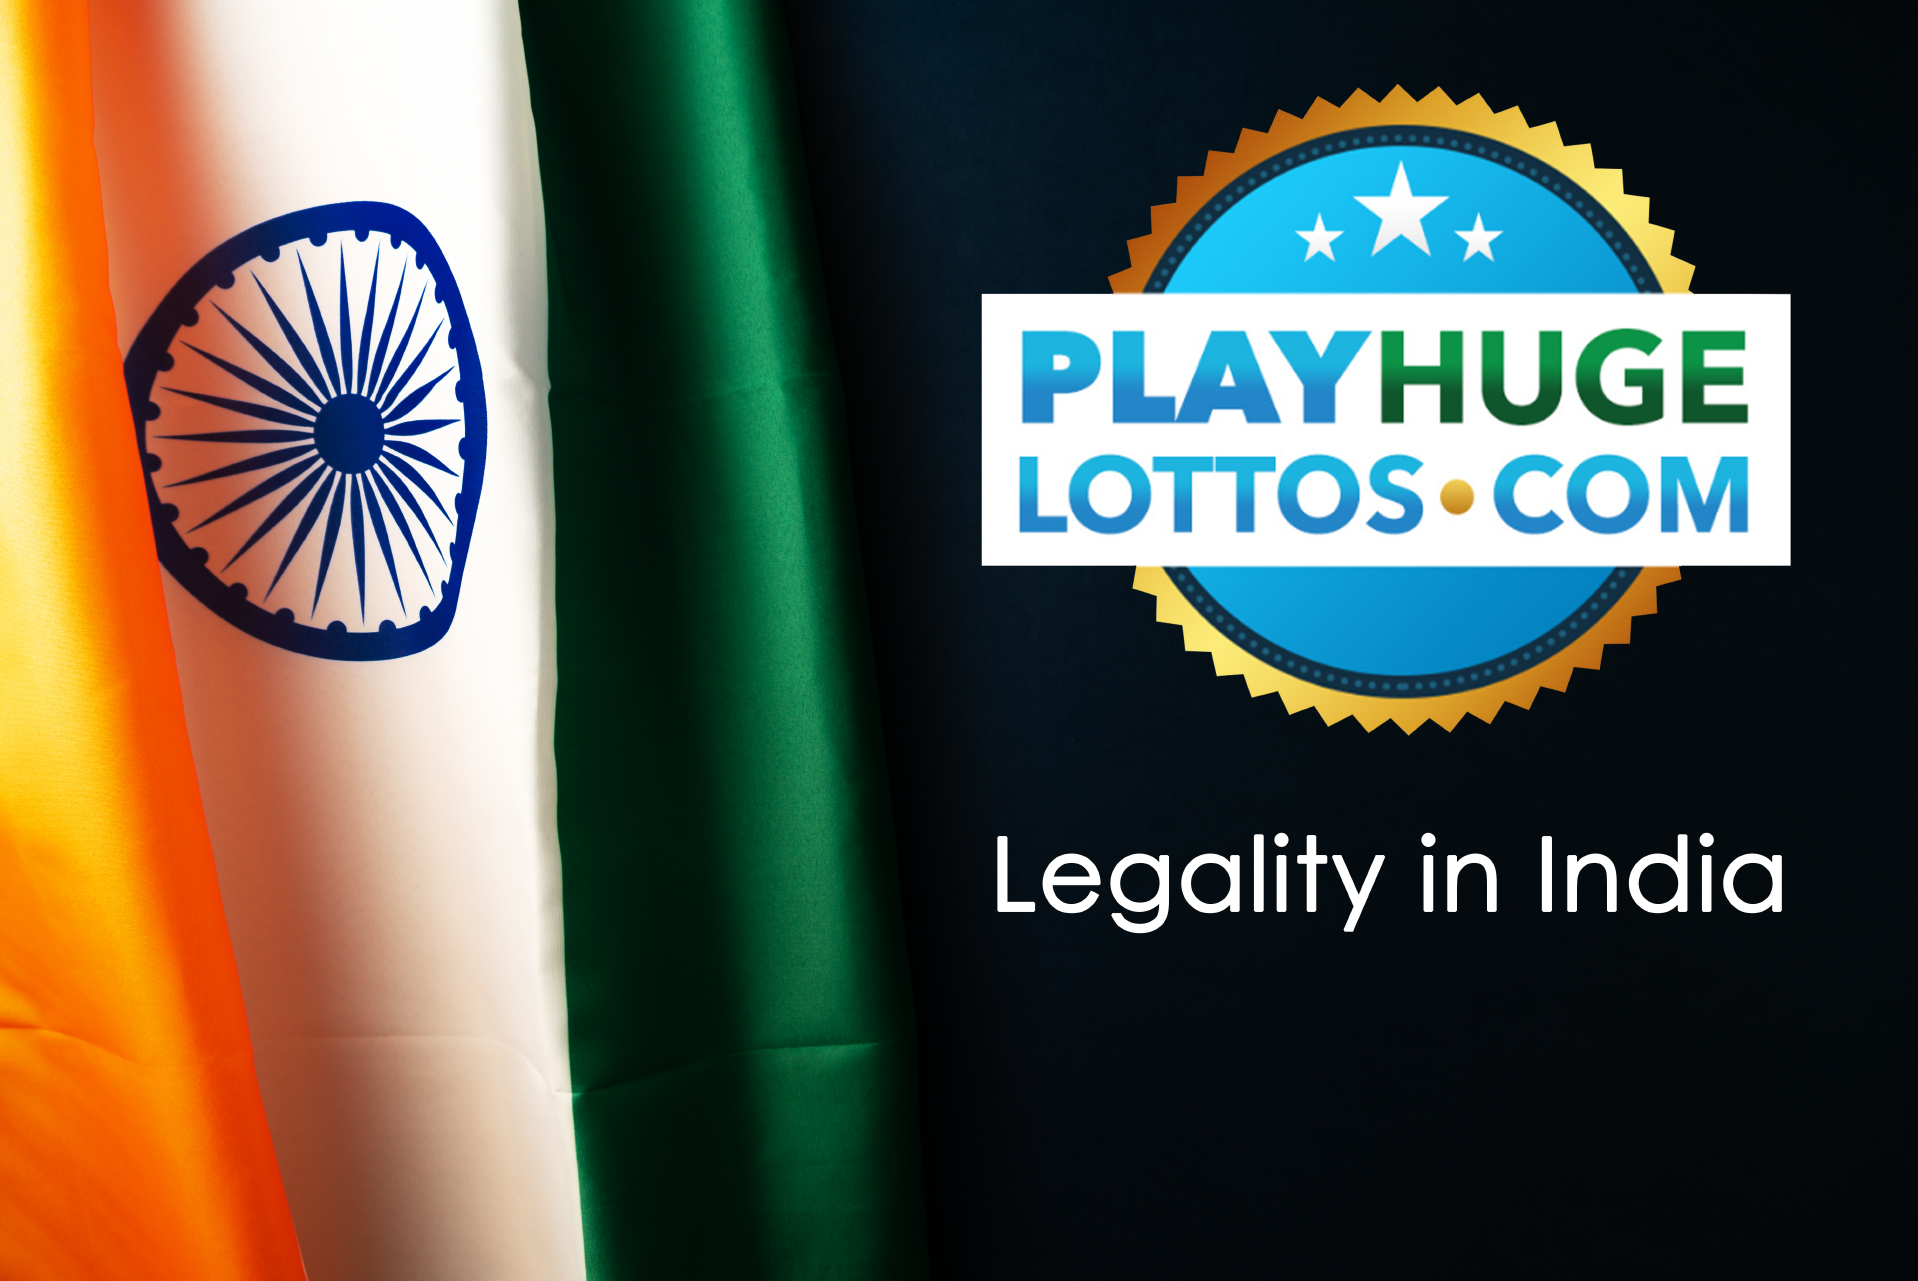 Buying lottery tickets on PlayHugeLotto is legal for Indian users.